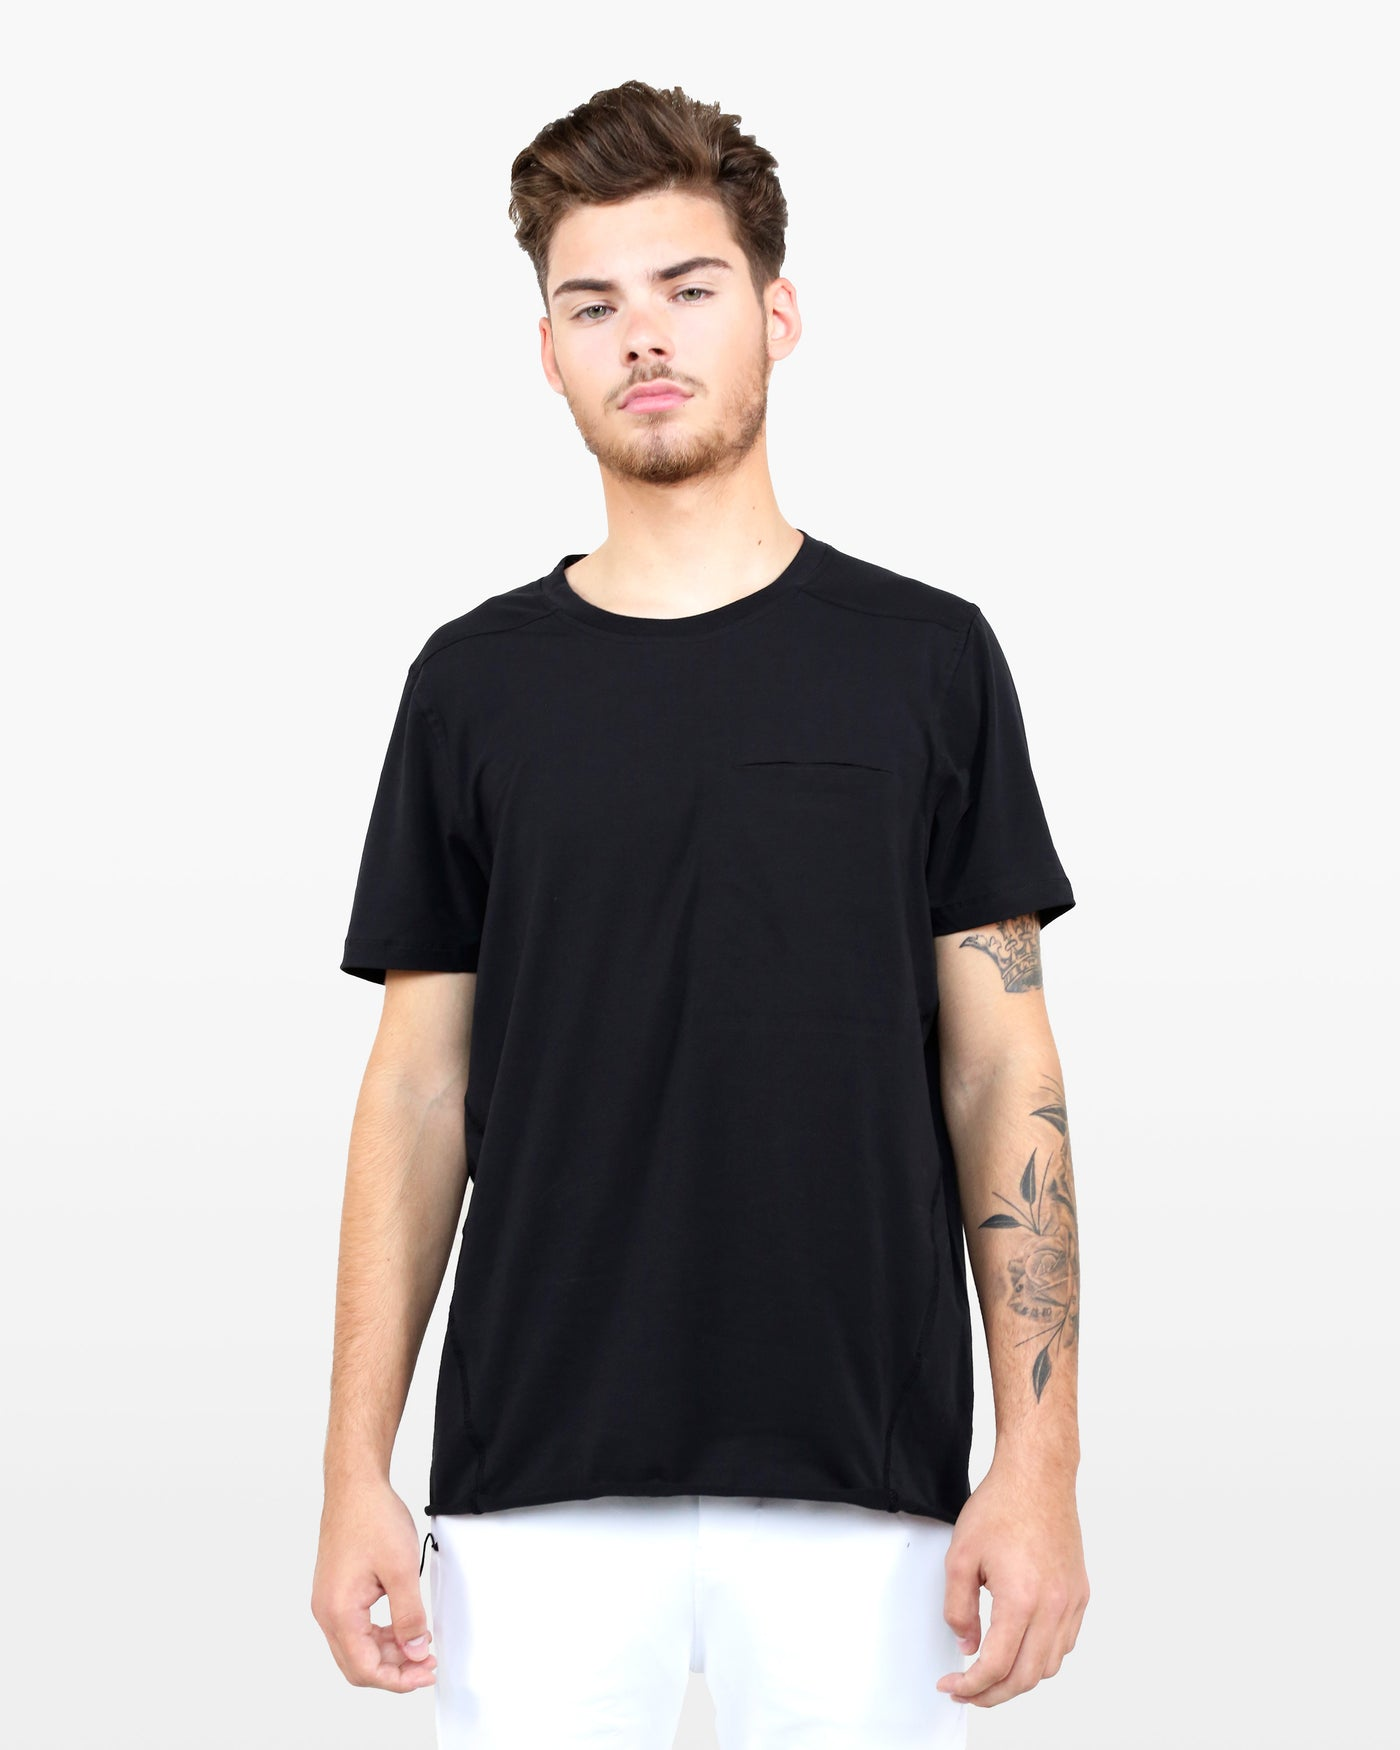 Bohr Tee DRJ in black